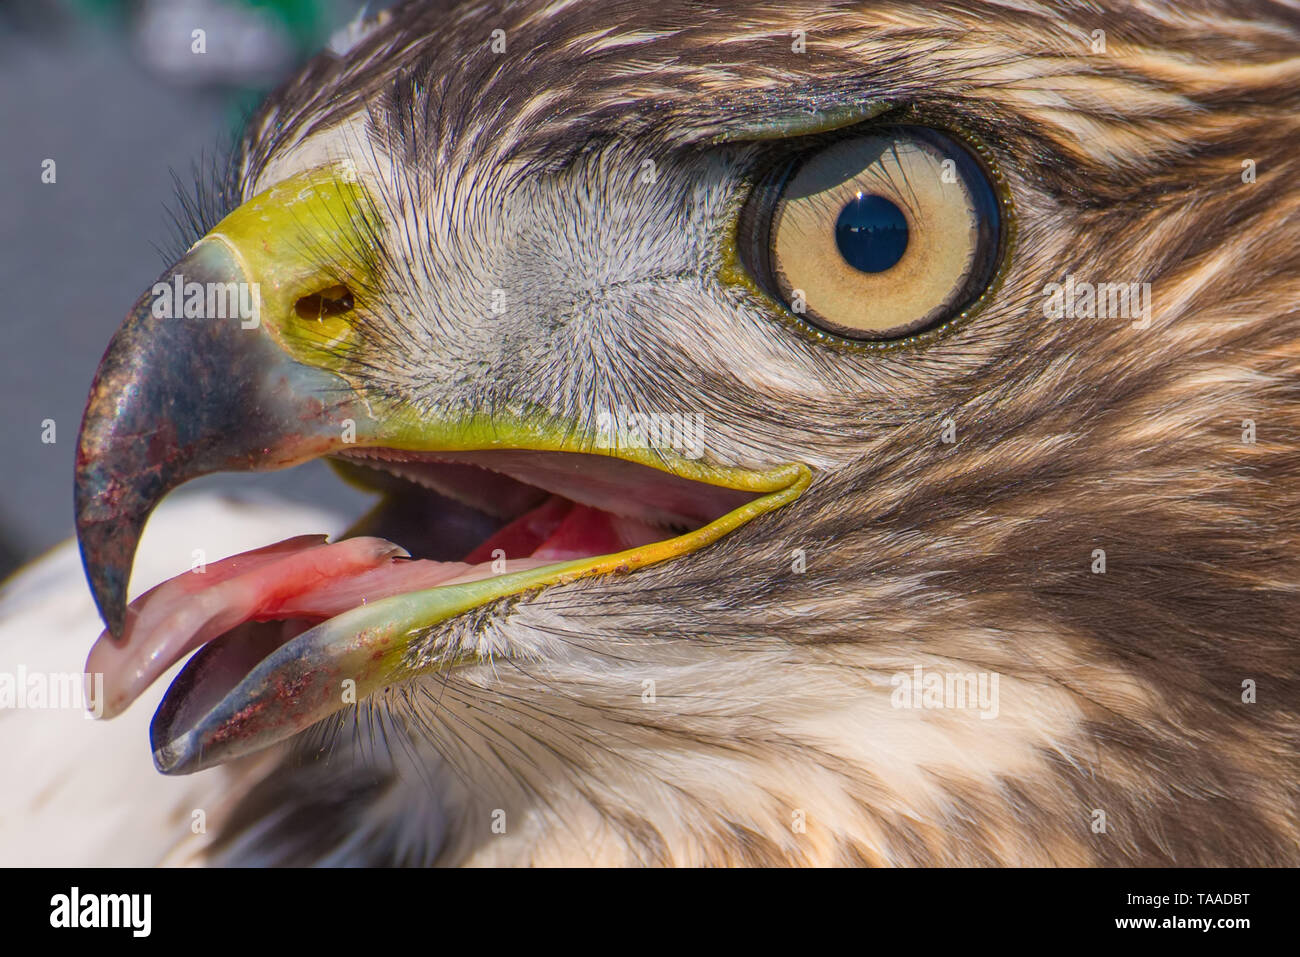 I believe a sharp-shinned juvenile hawk portrait with tongue sticking out - close up - at Hawk Ridge Bird Observatory in Duluth, Minnesota during Fall - Stock Image